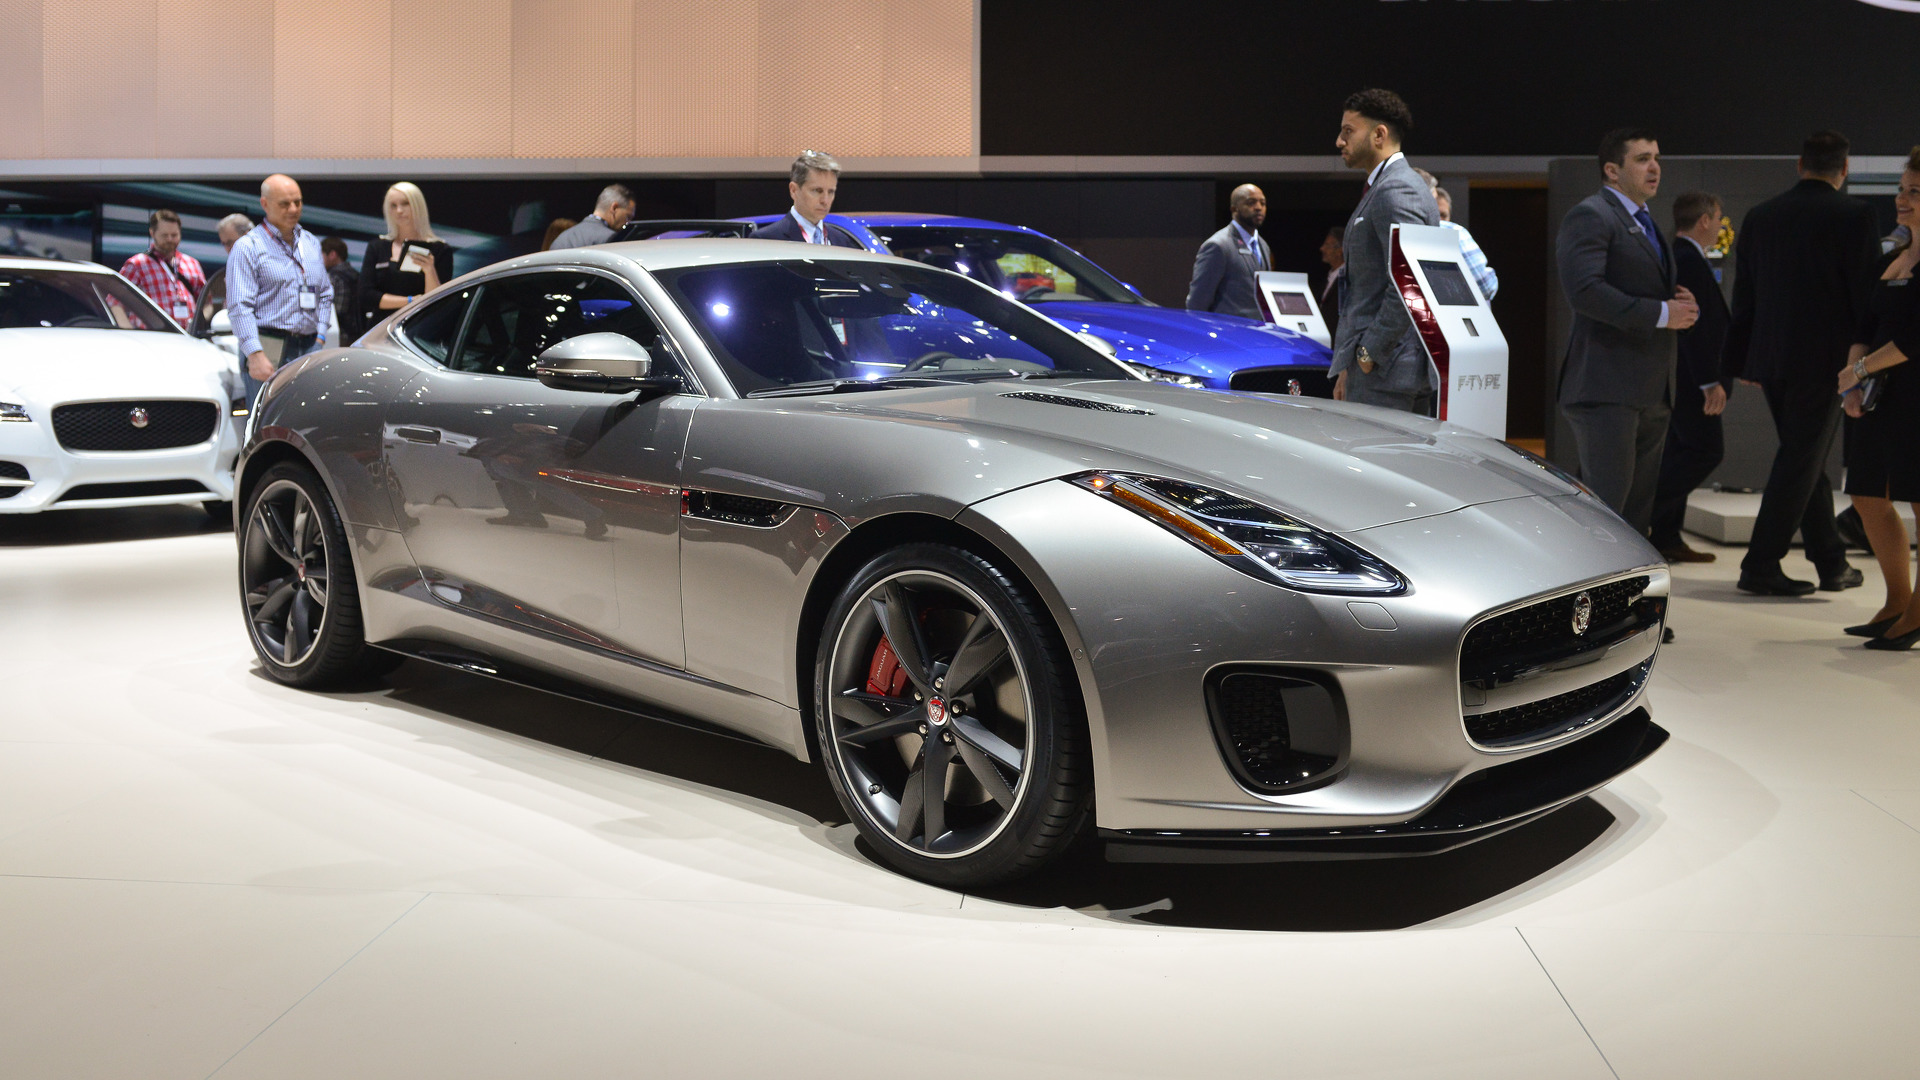 2018 Jaguar F Type >> 2018 Jaguar F-Type Becomes A Tamer Kitty With New 2.0-Liter Engine